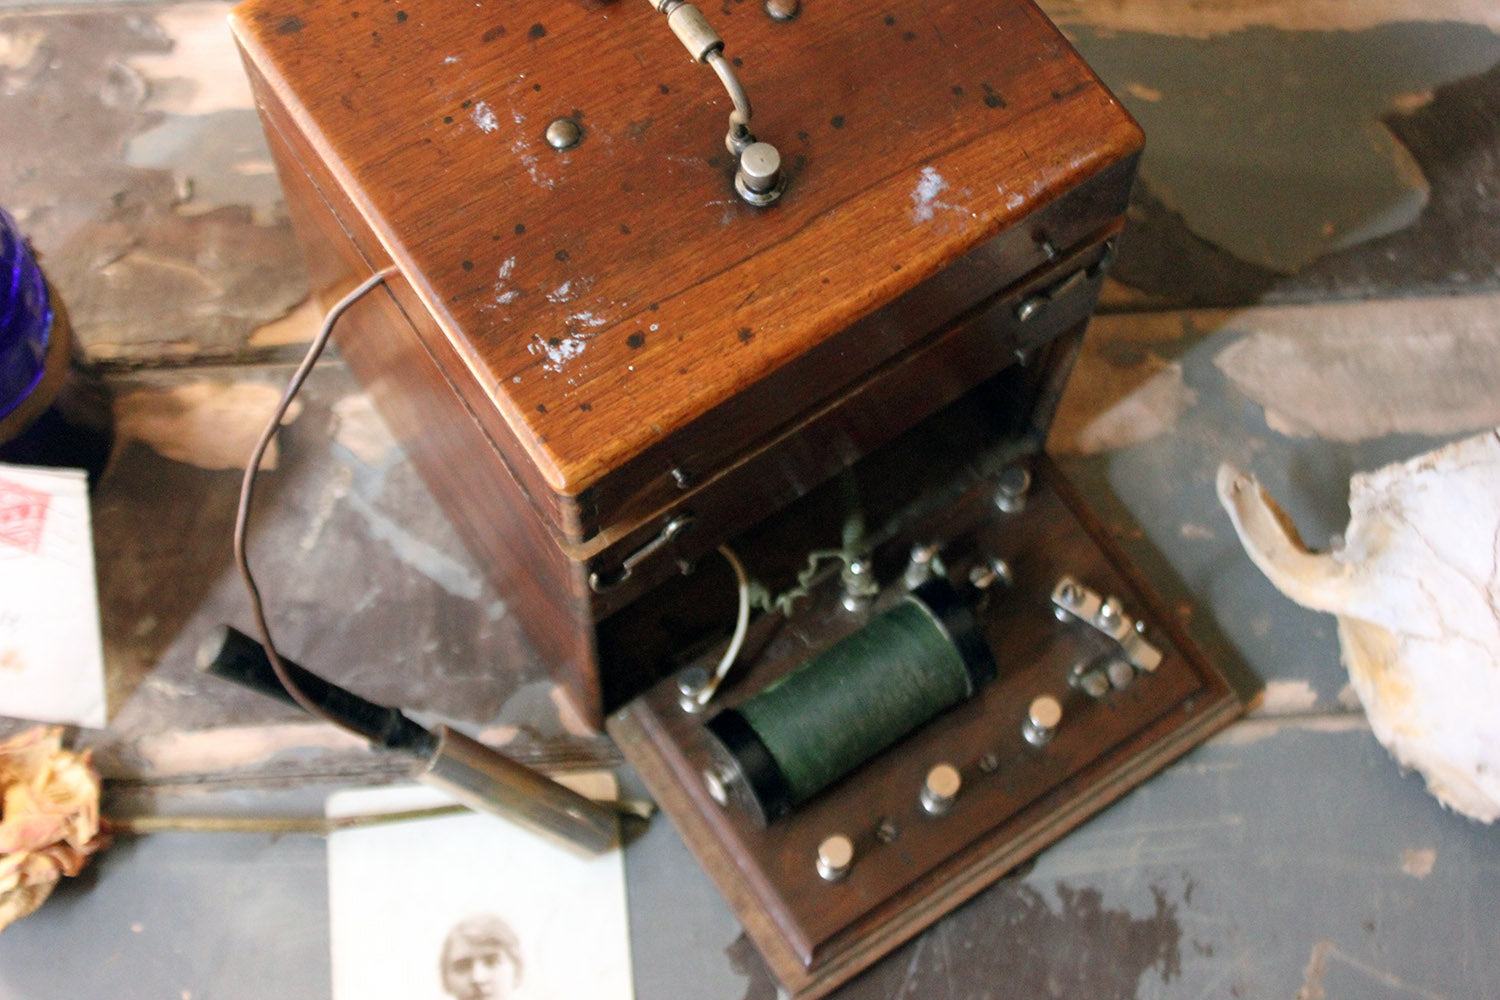 A Victorian Campaign Style Induction Coil Electro Therapy Shock Machine c.1890